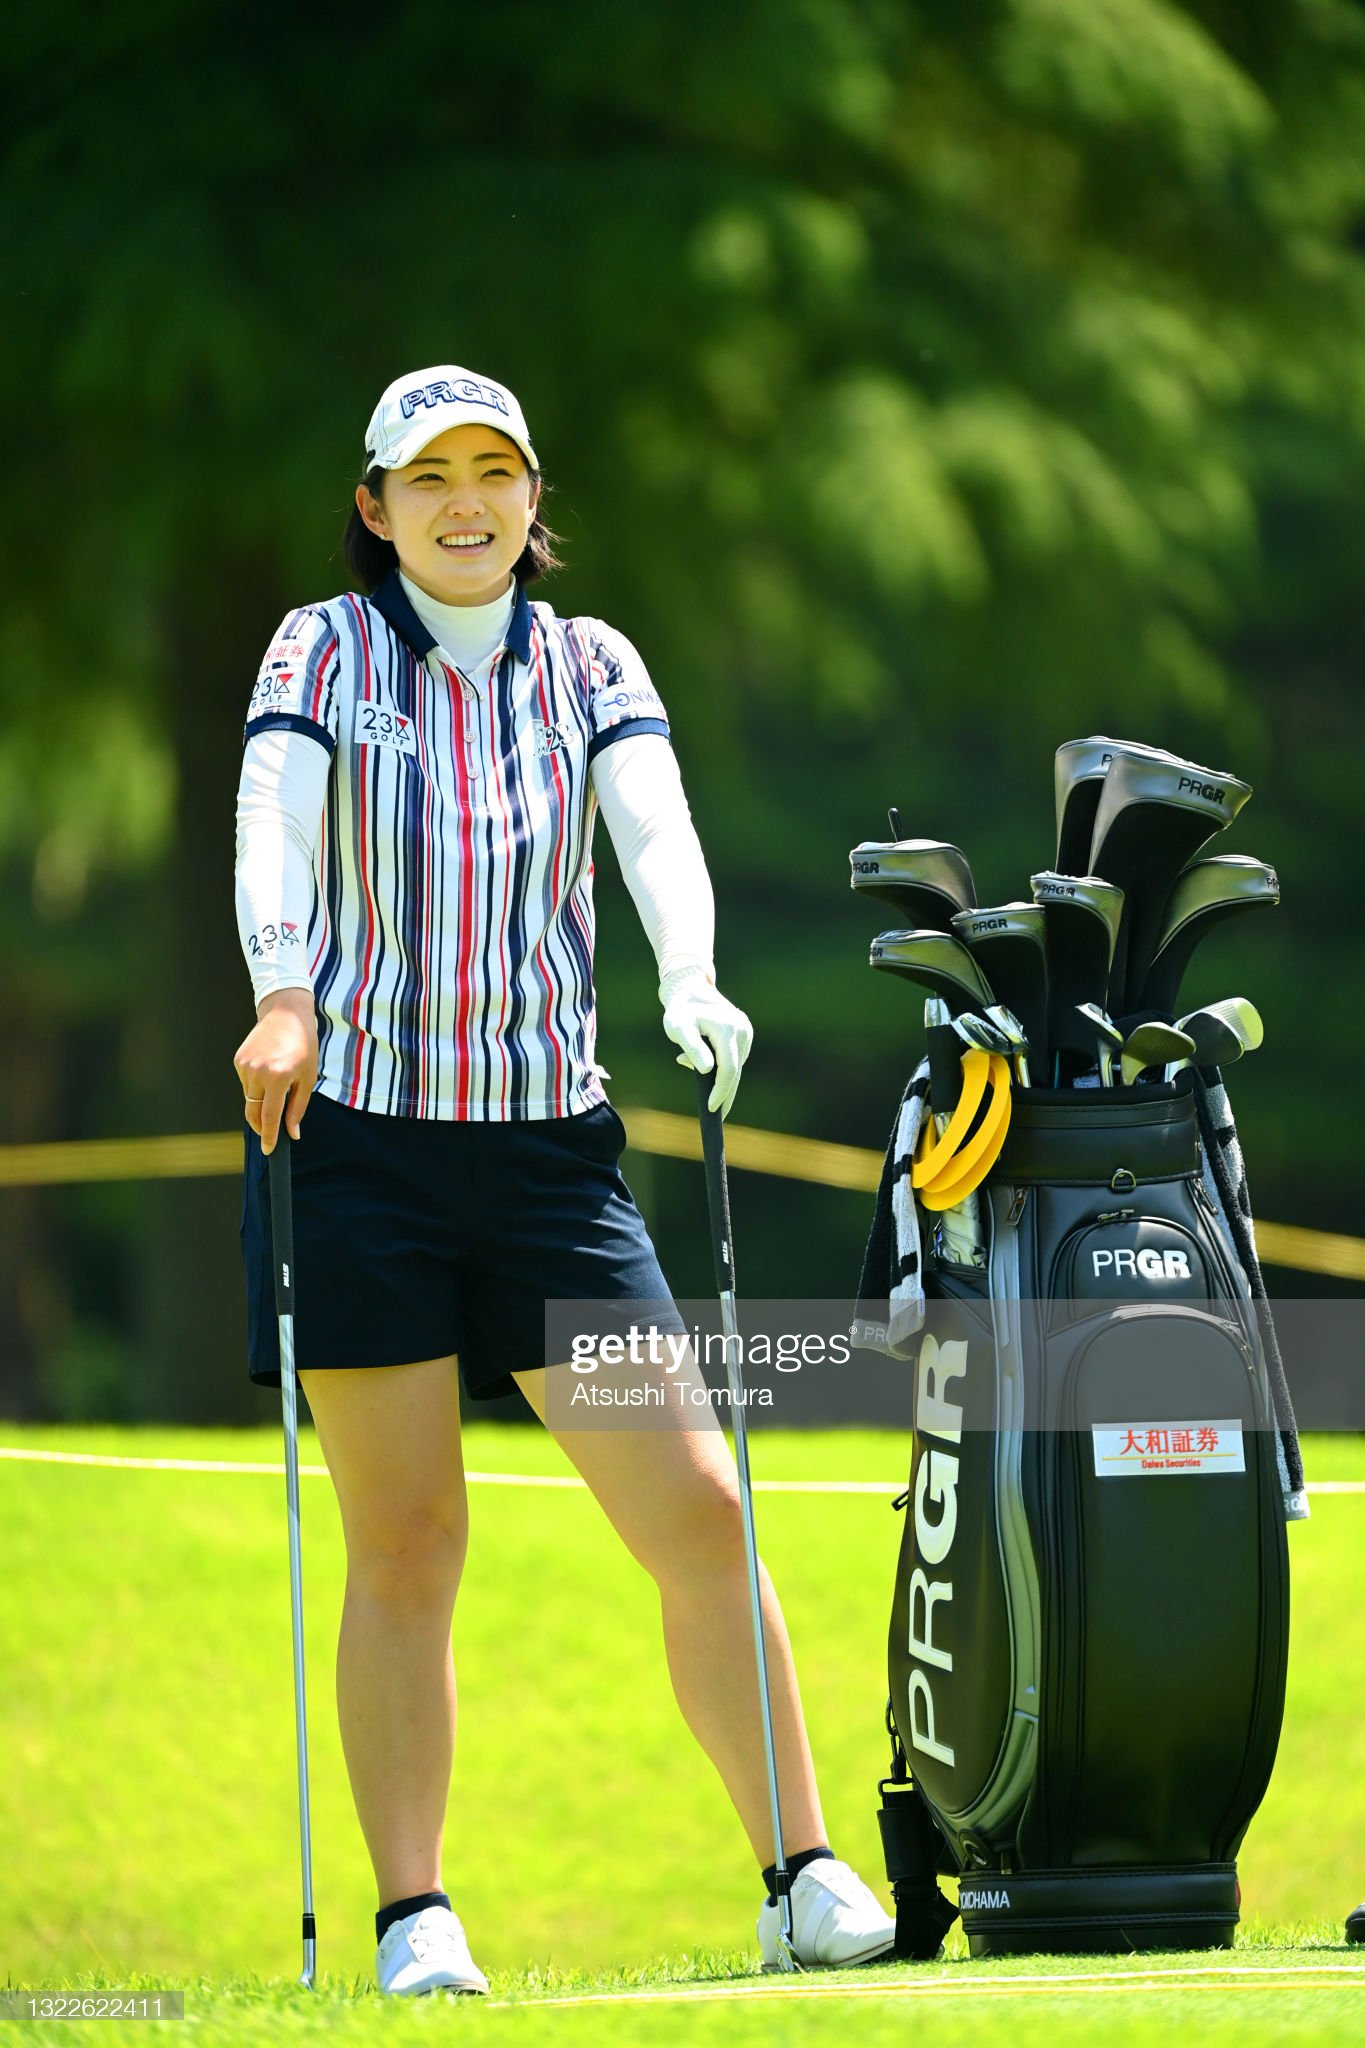 https://media.gettyimages.com/photos/rie-tsuji-of-japan-is-seen-during-the-practice-round-of-the-ai-at-picture-id1322622411?s=2048x2048